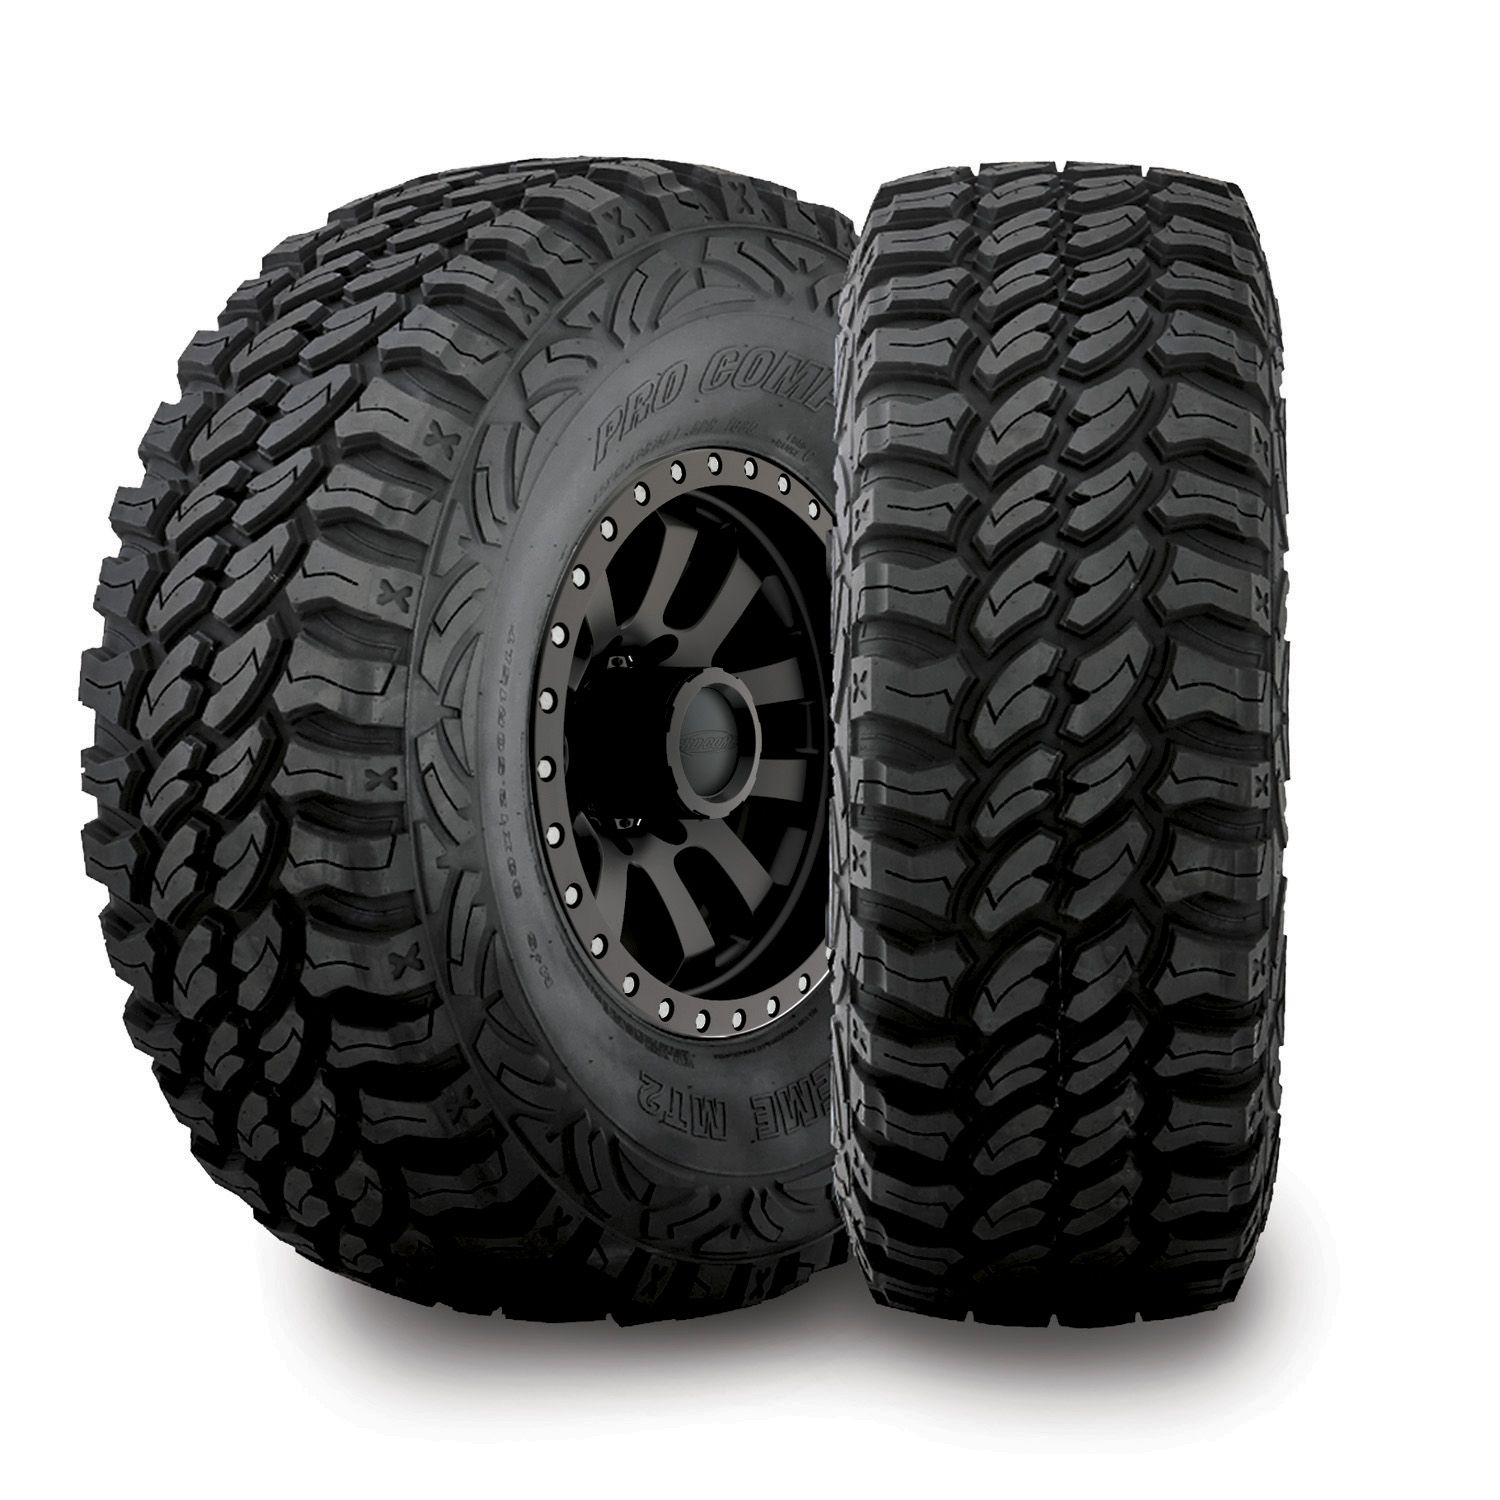 Used Off Road Tires in Houston, TX Off road tires